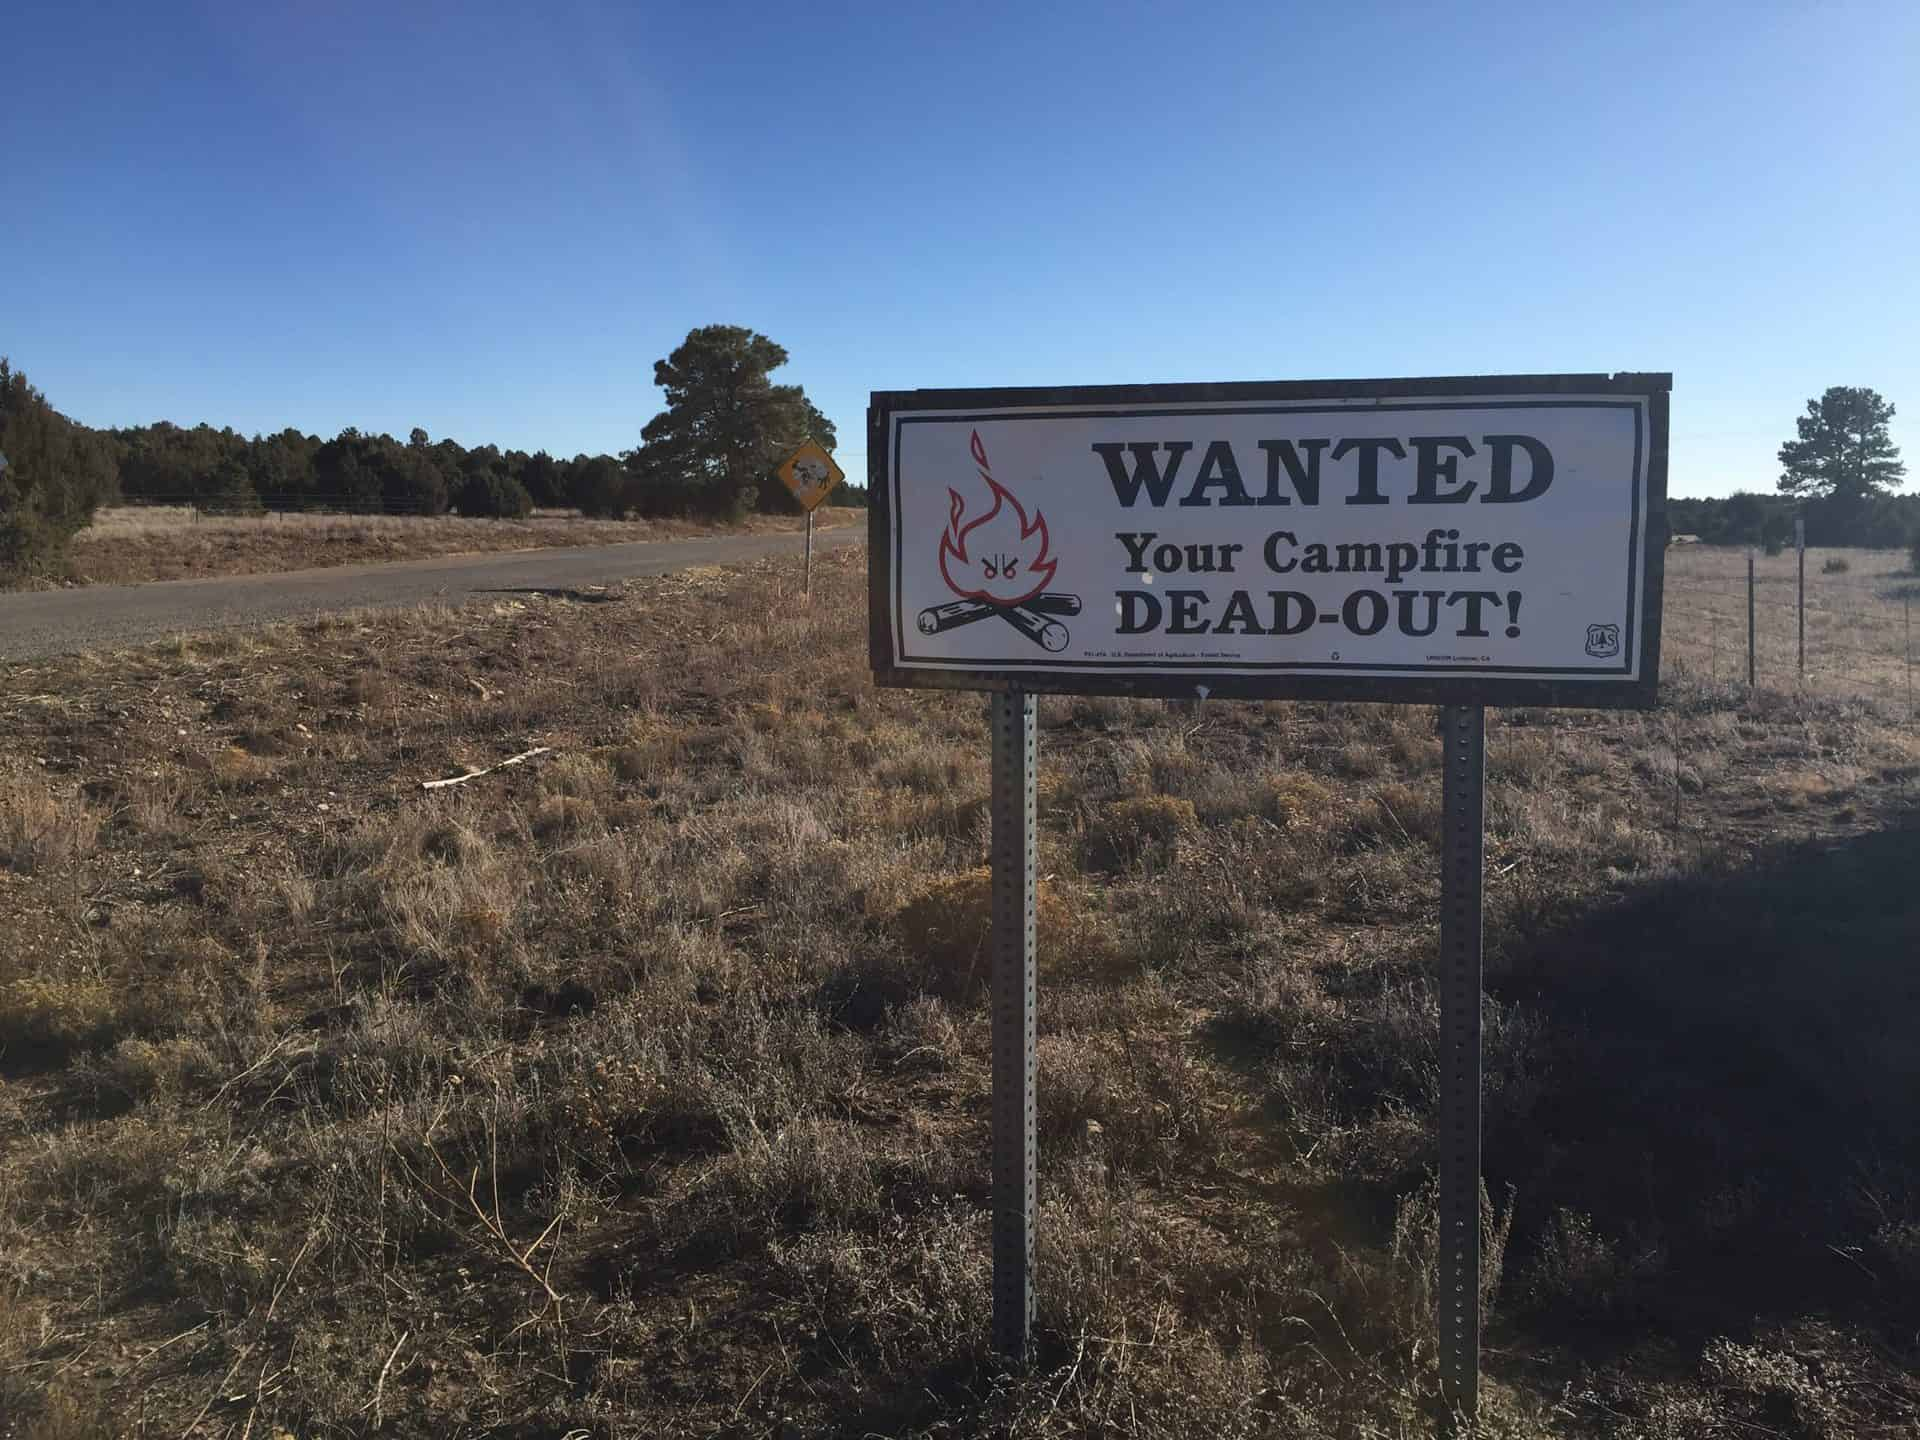 """A sign reading """"Wanted Your Campfire Deadout"""" on grassland next to a road"""